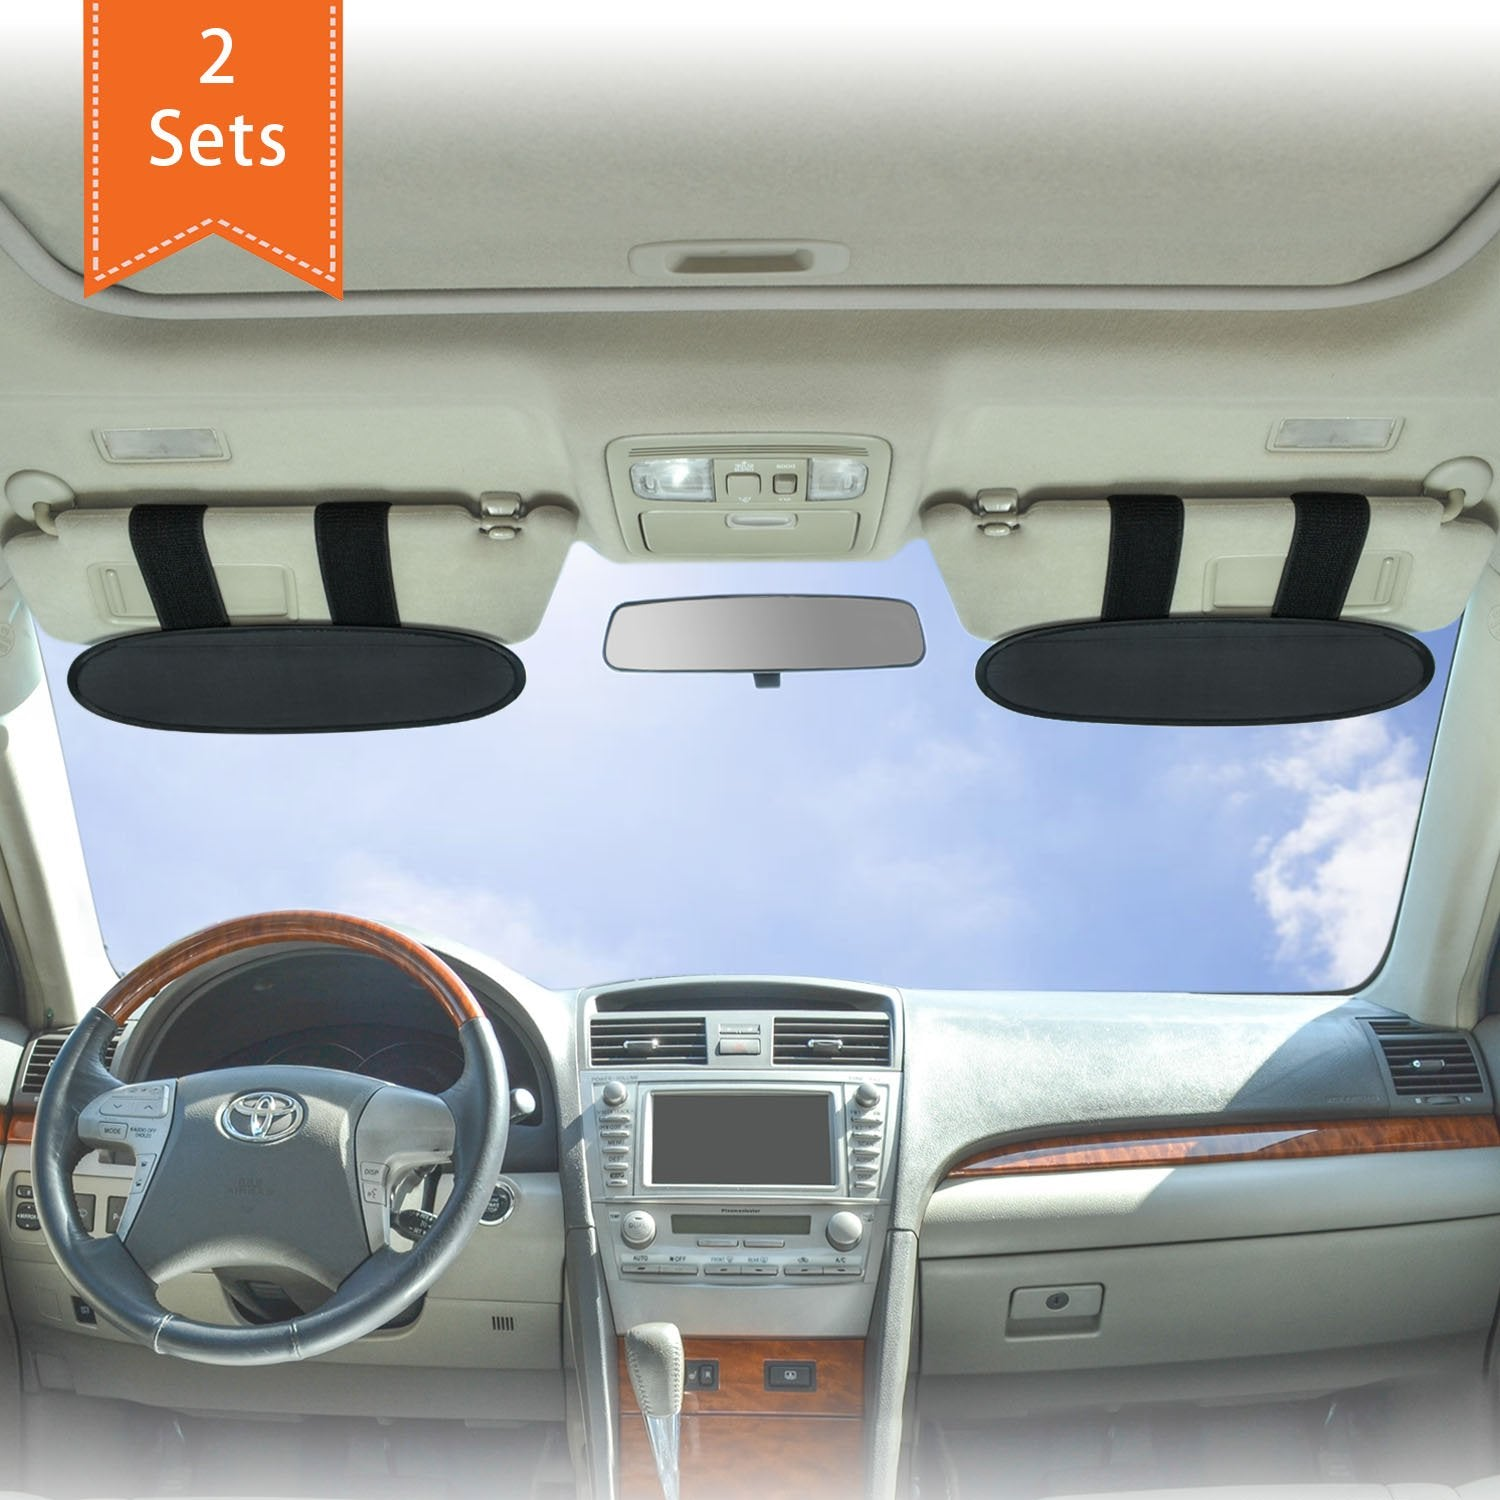 Sun Blocker For Car >> Wanpool Anti Glare Anti Dazzle Vehicle Visor Sunshade Extender Sun Blocker For Cars Vans And